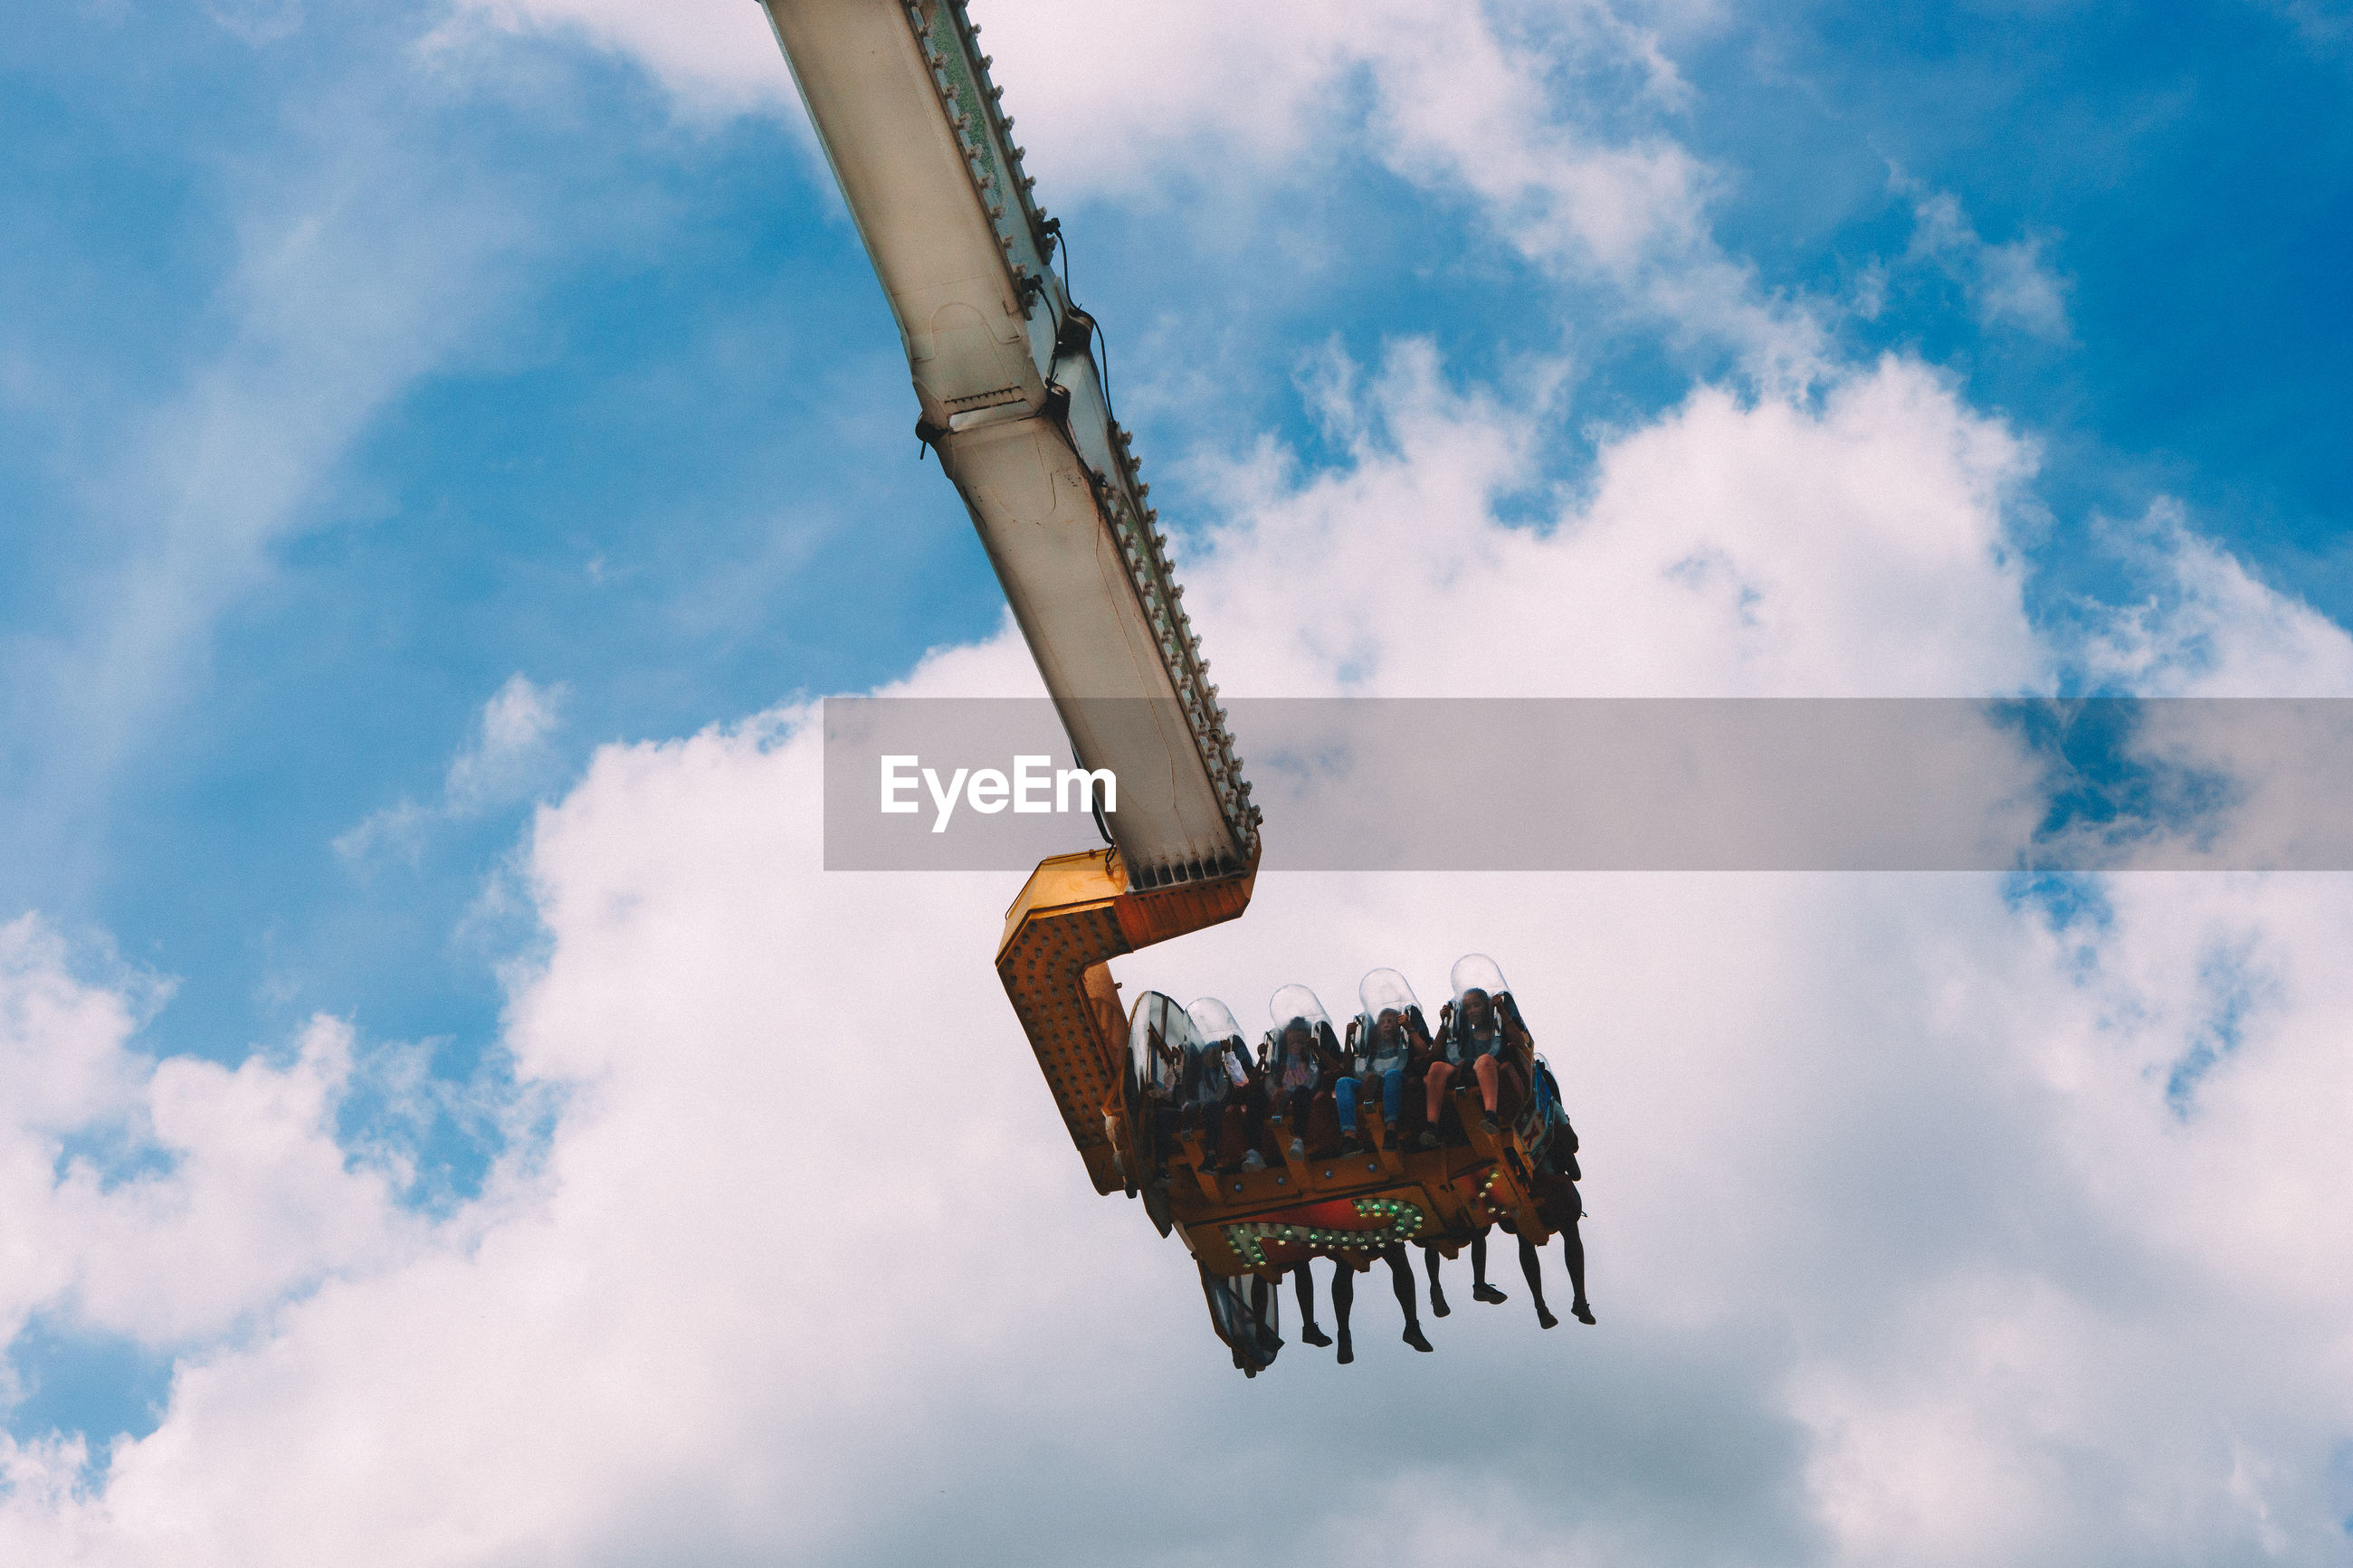 Low angle view of people enjoying suspended ride at amusement park against cloudy sky